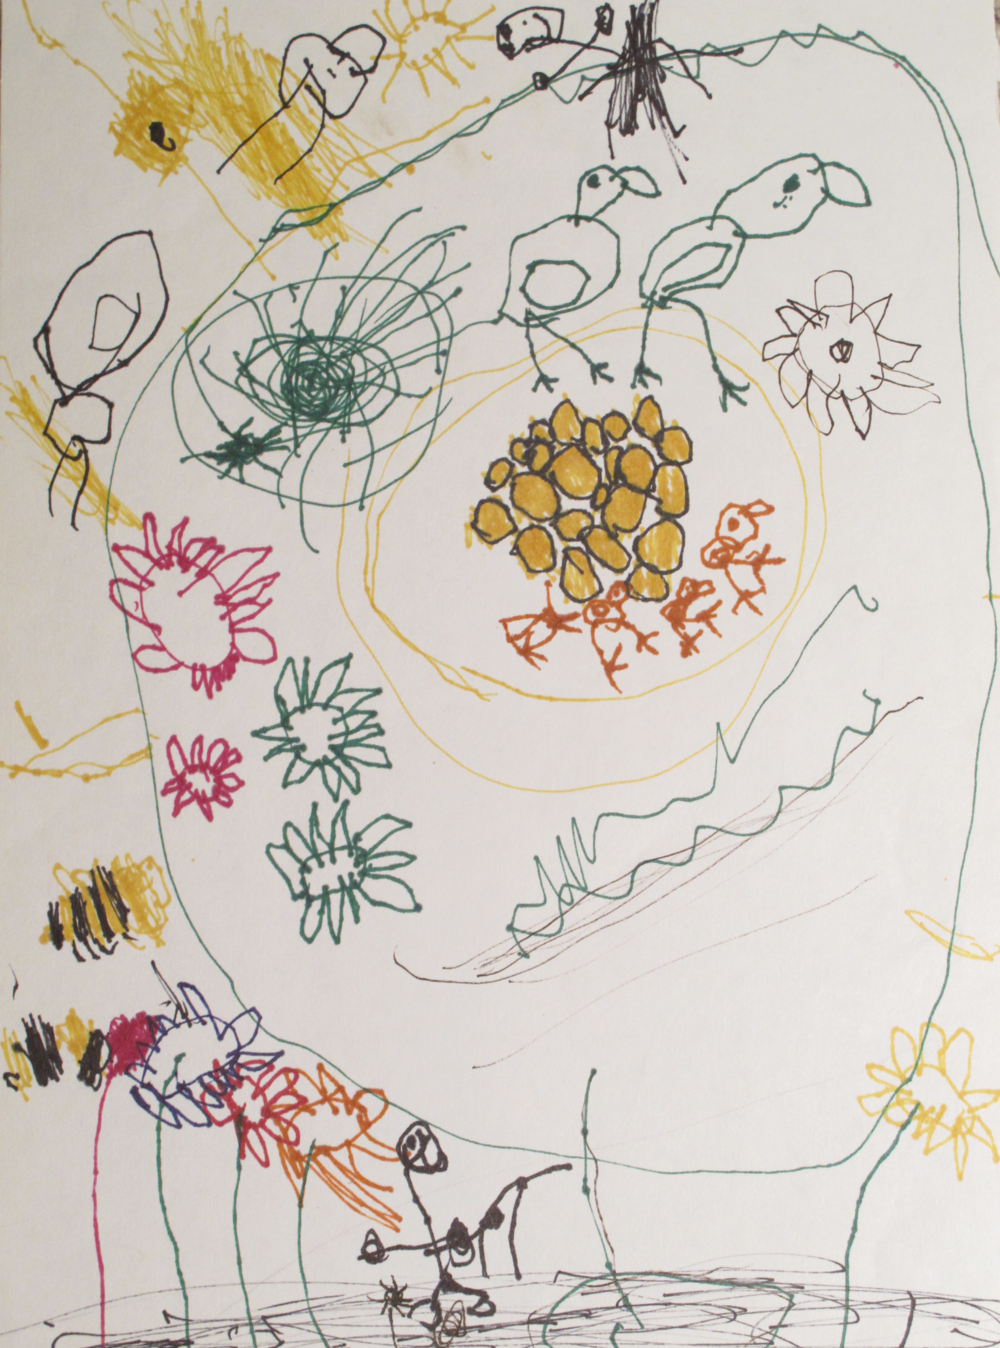 And finally, there is the drawing she made of the two of us in our backyard: a bottlebrush tree, the bees, the sun, a spider in its web, the flowers, a bird with babies in the nest, and her mother below with the watering can. She's at the top tending to the hatching eggs.